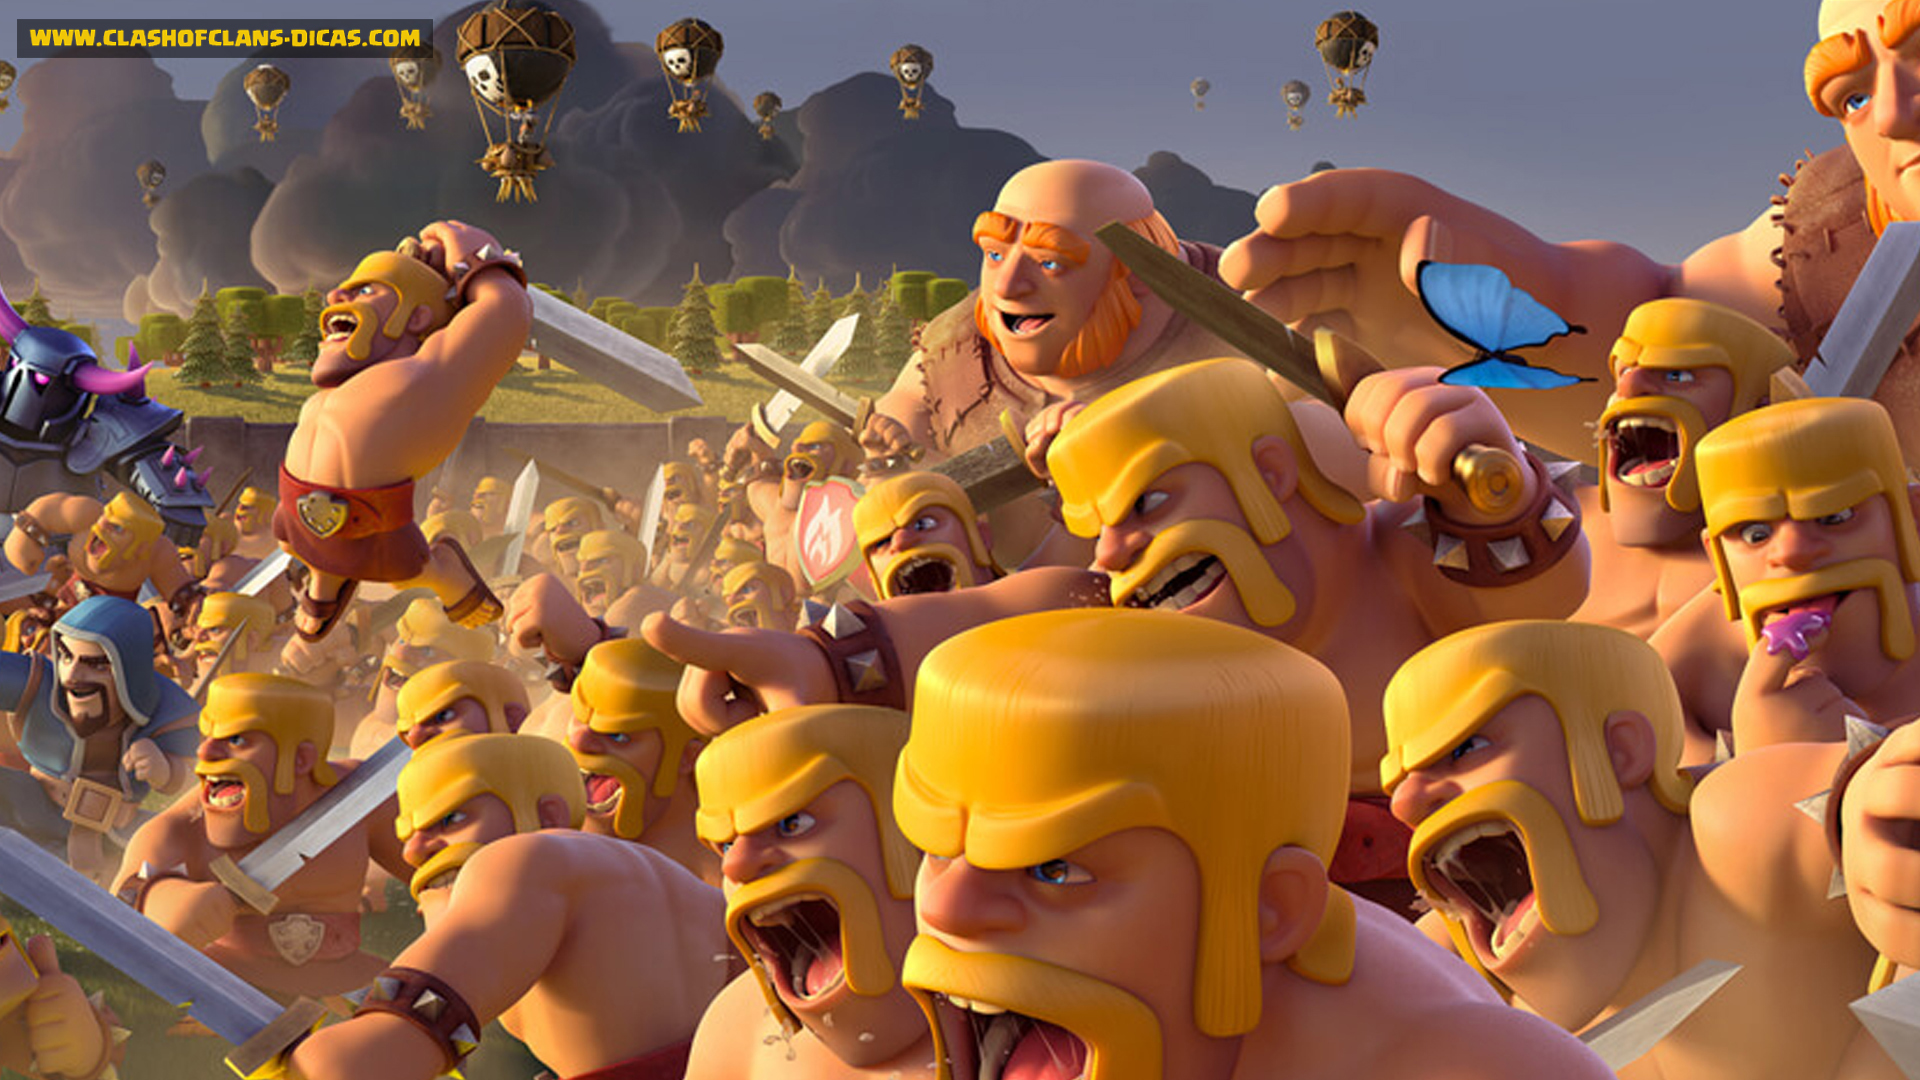 Clash Of Clans Images Wallpapers 43 Wallpapers 1920x1080